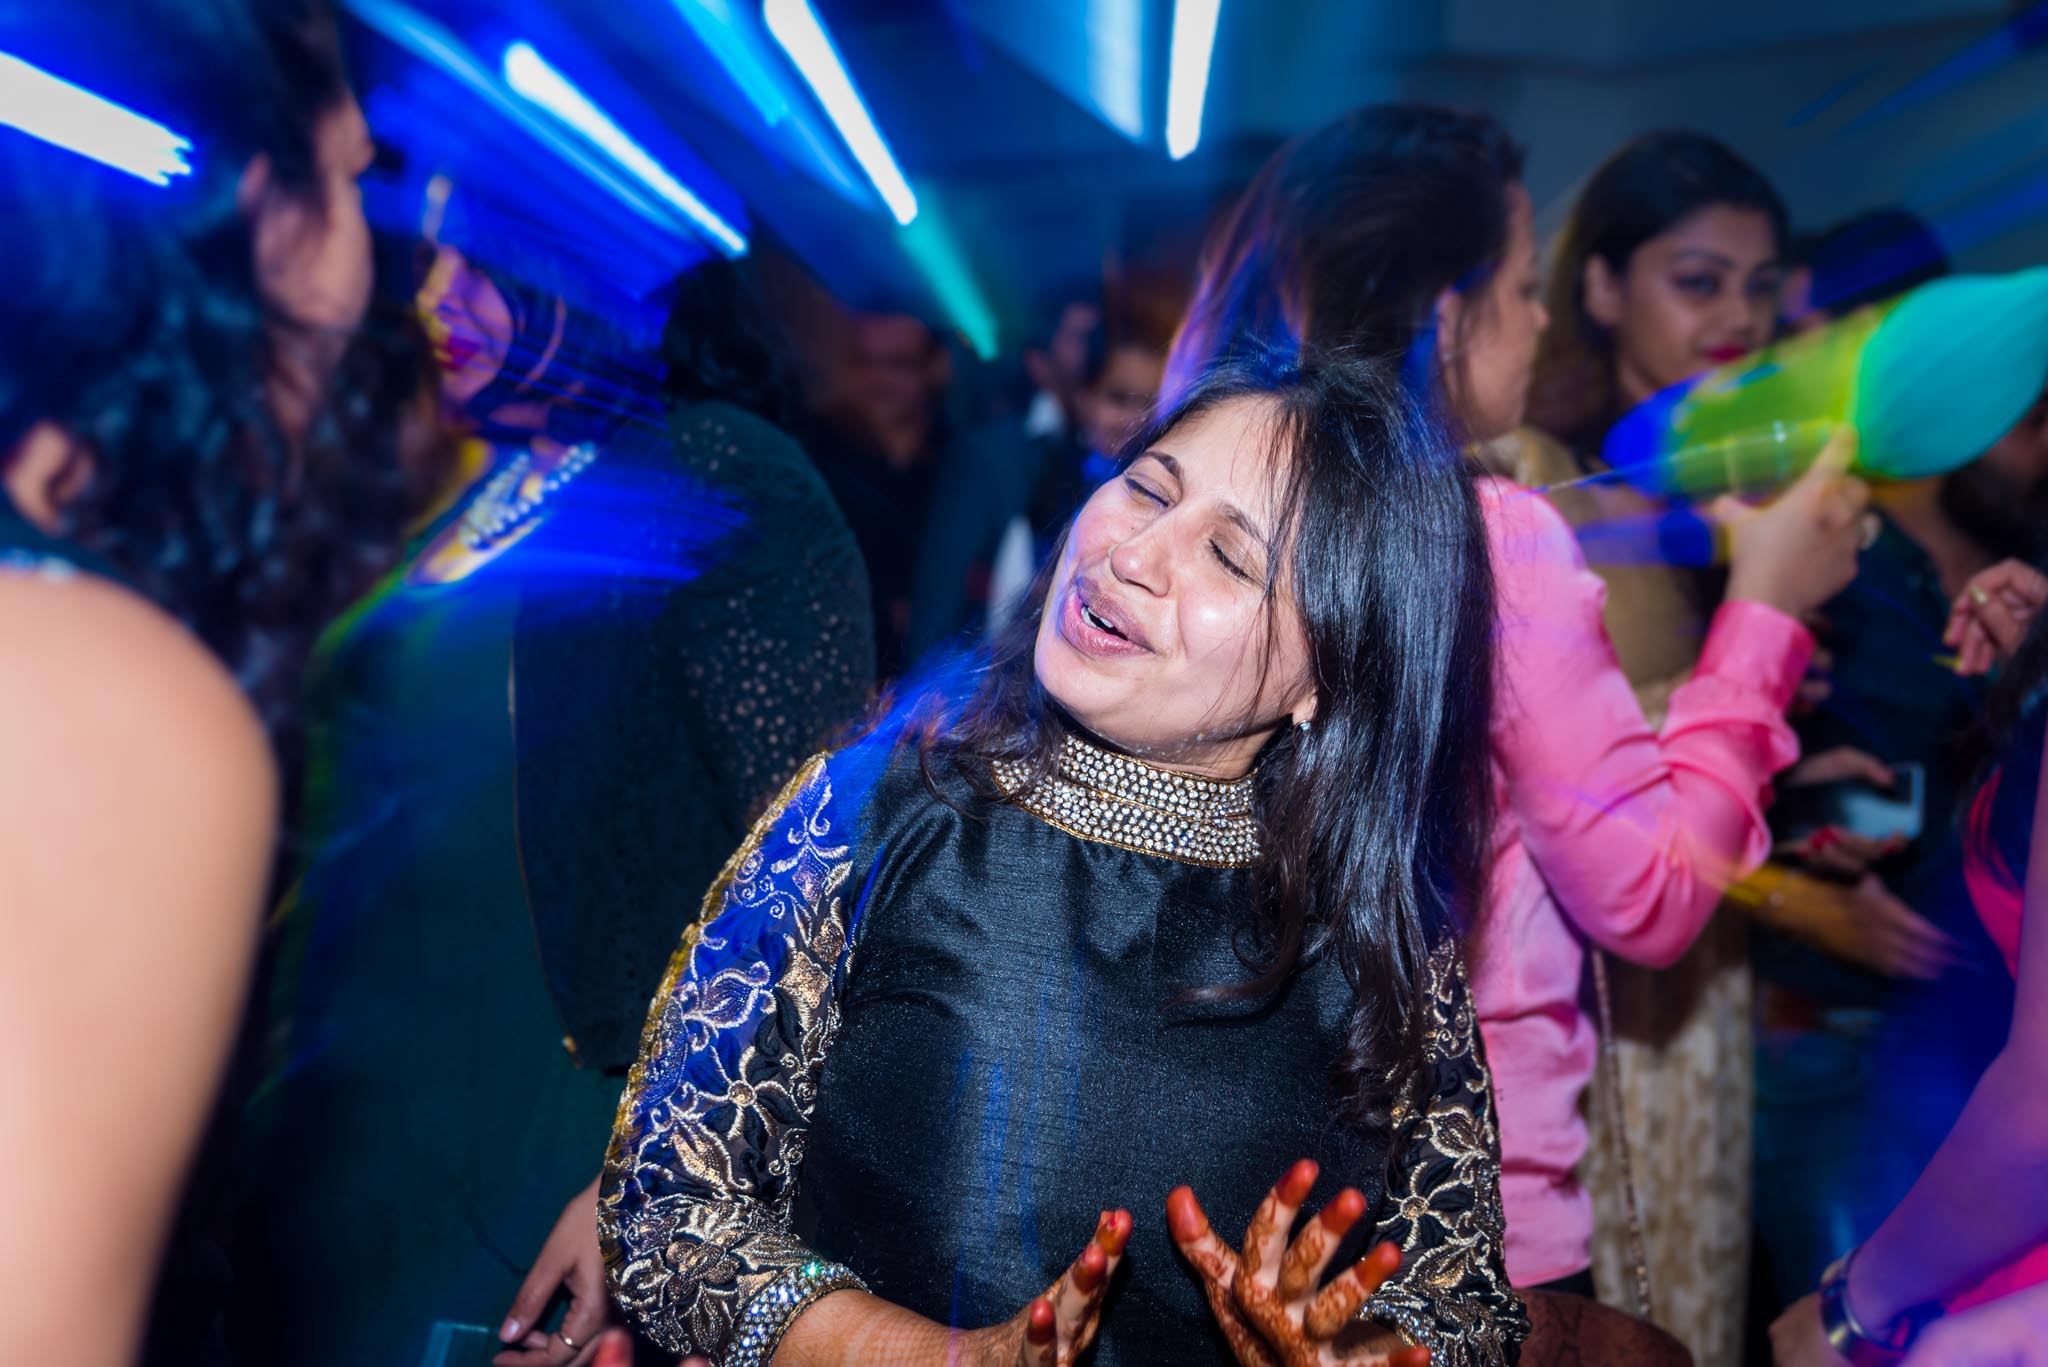 WhatKnot-Candid-Wedding-Photography-Mumbai-Bangalore-31